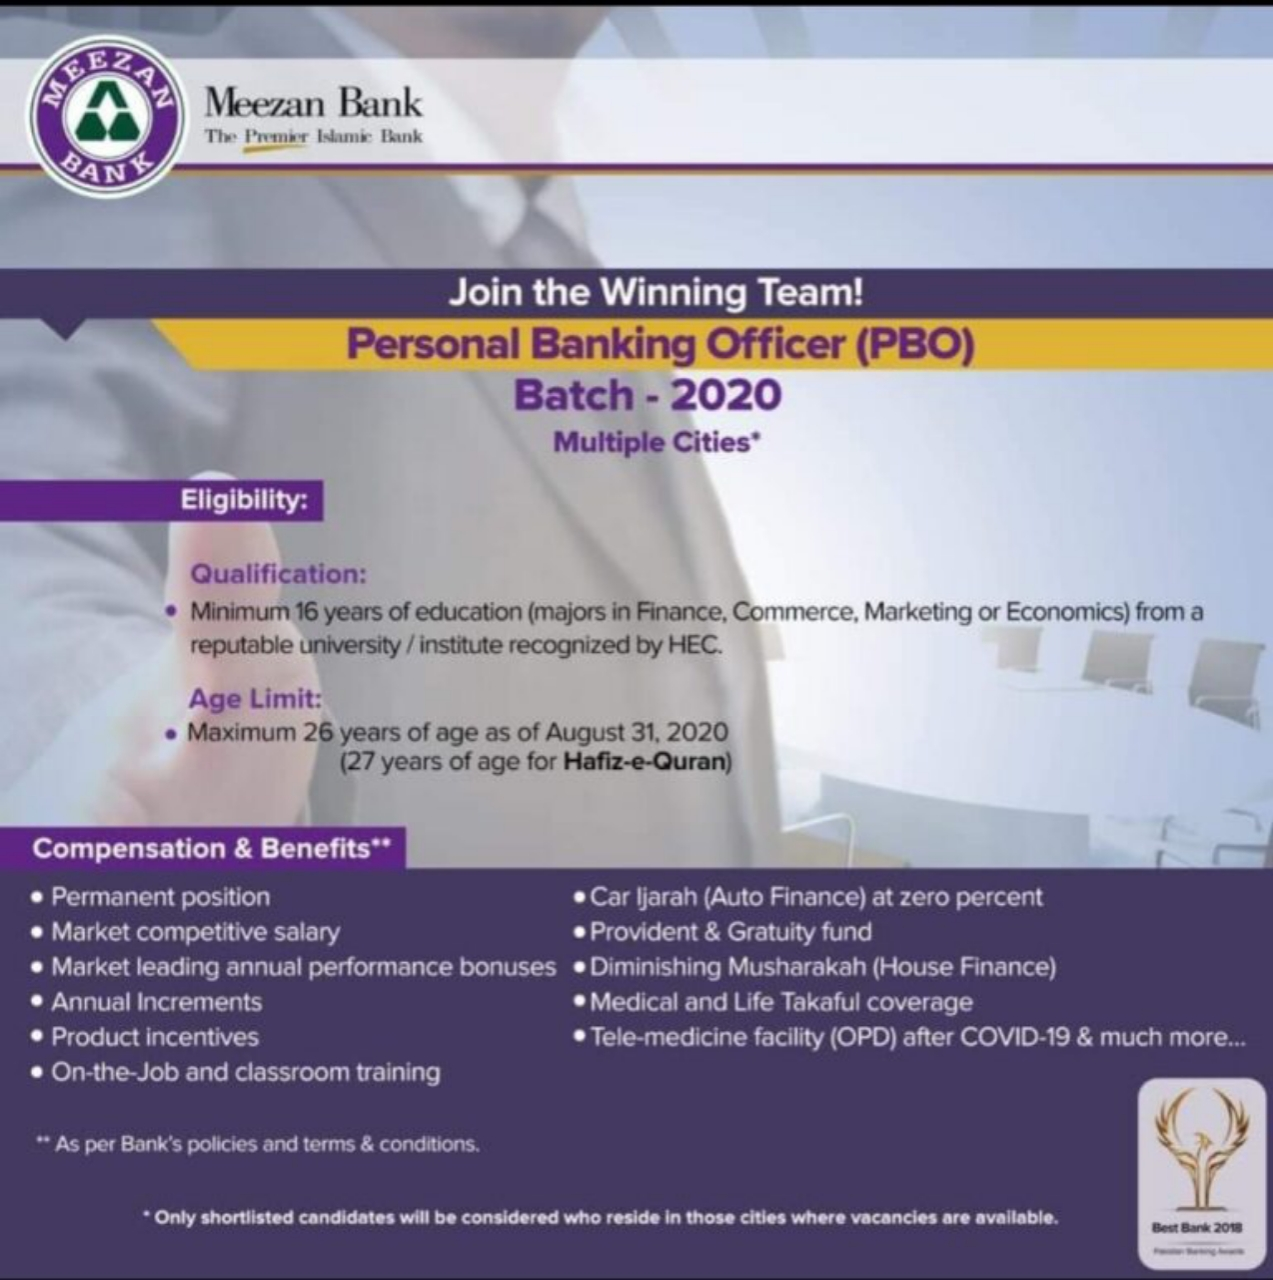 Meezan Bank Jobs For Personal Banking Officer 2020